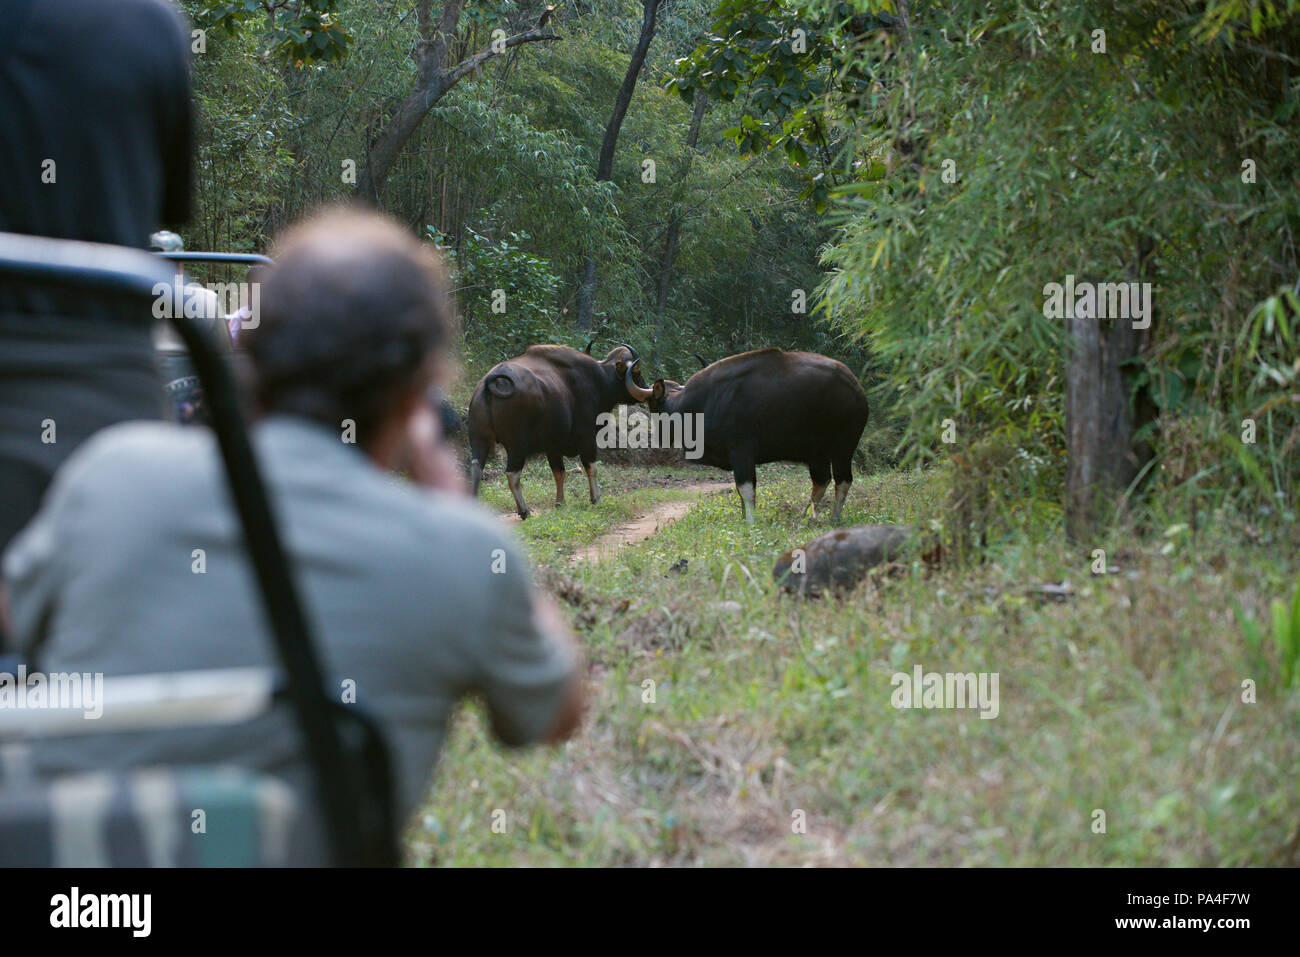 Two buffalos in the road fighting and watched by a tourist jeep with tourist passengers on a game drive in Bandhavgarh National Park, India - Stock Image